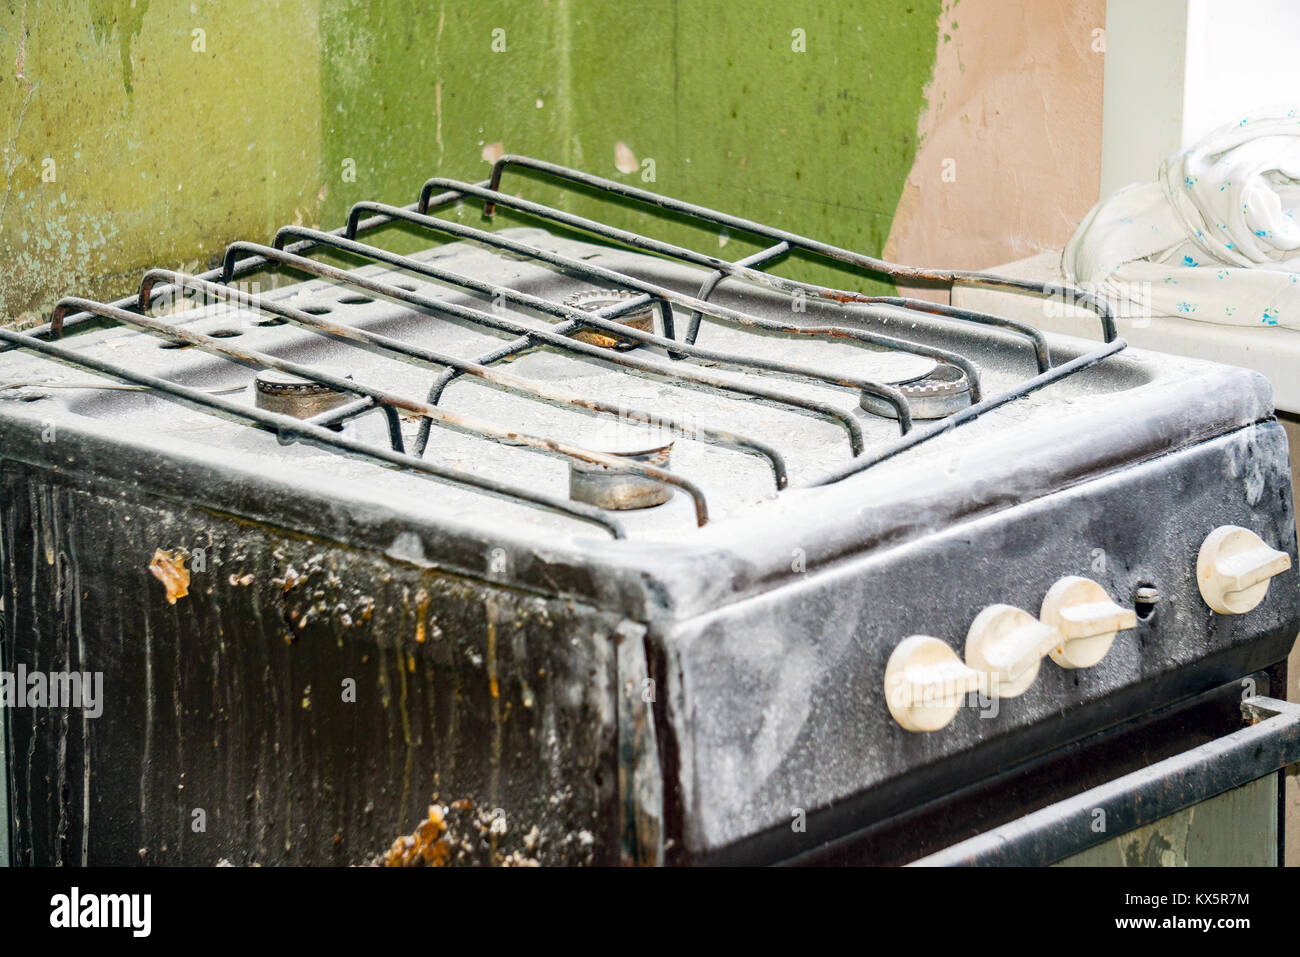 Old dirty gas stove in an abandoned state - Stock Image